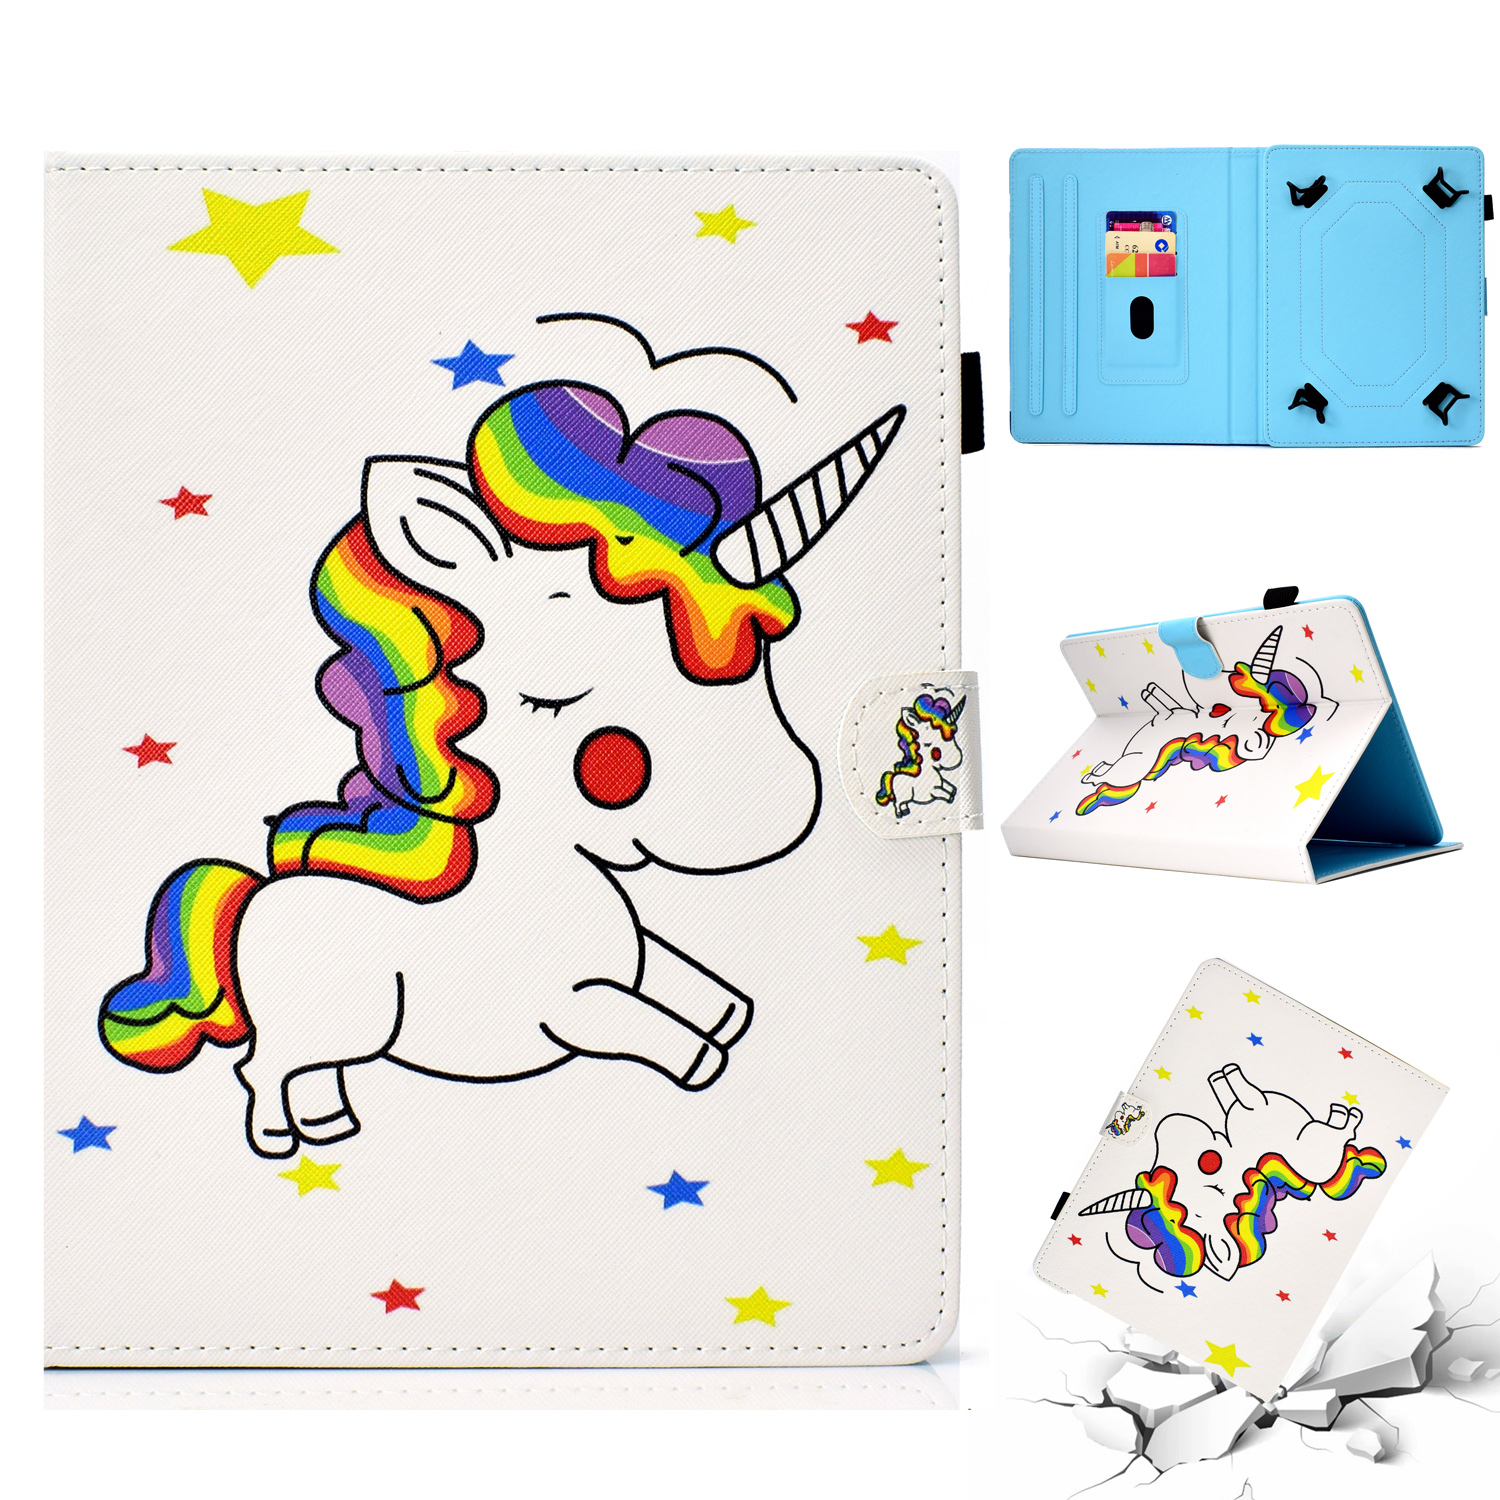 "Universal 6- 7 Inch Tablet Caes, Allytech Stand Folio Wallet Case Cover for Kindle Paperwhite 2018 2016, RCA Voyager 7"", Samsung Galaxy Tab A 7.0/ Tab E Lite/ Tab 3 T280 T110, iView, Rainbow Unicorn"